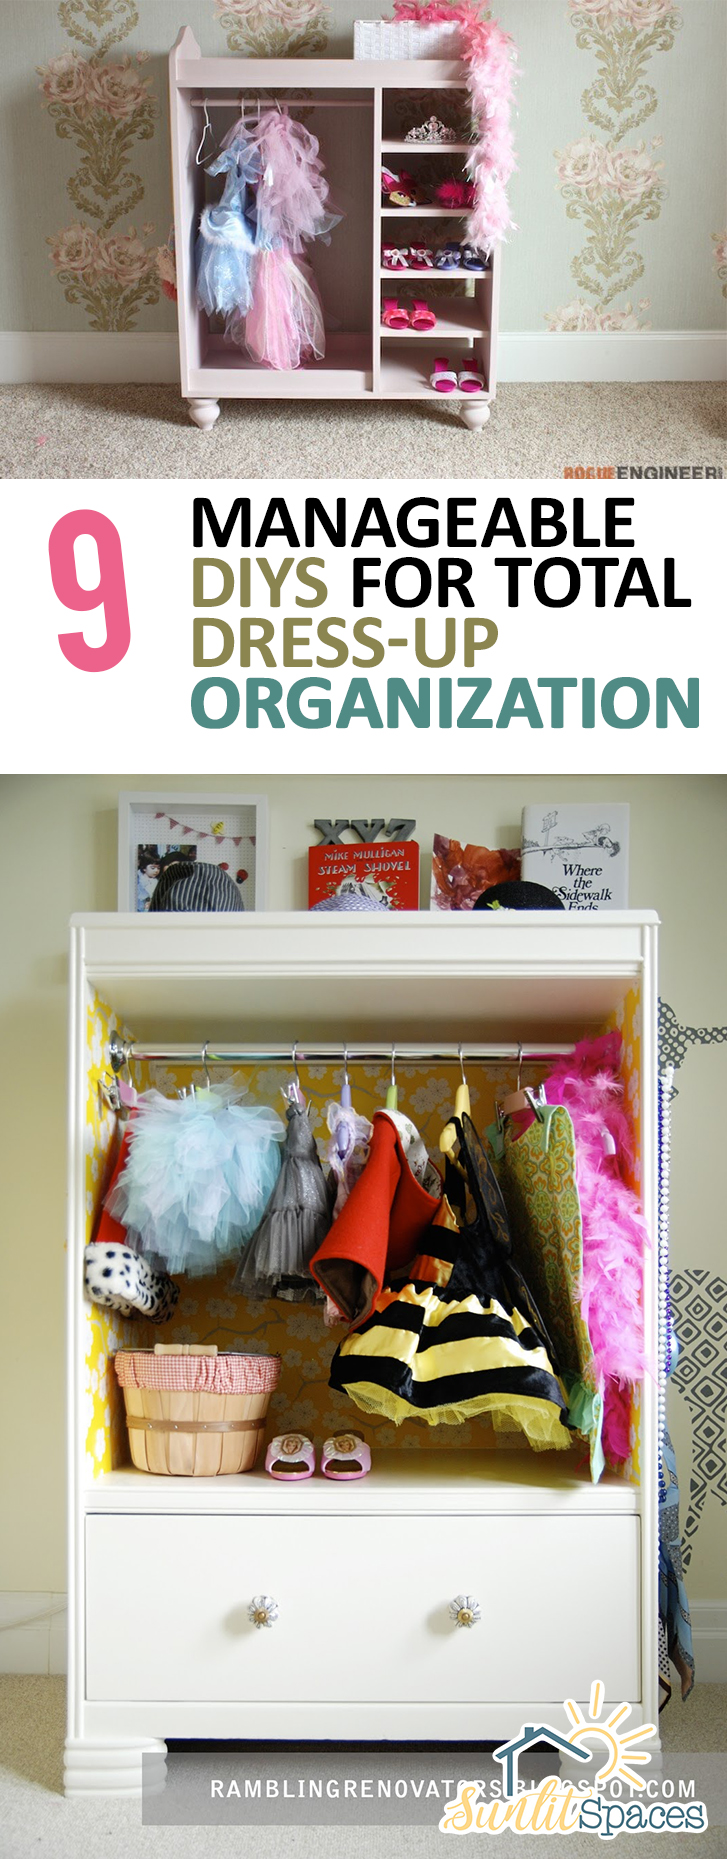 9 Manageable DIYs for Total Dress-Up Organization  Organization, Dress Up Organization, Dress Up Organization Hacks, DIY Organization, DIY Organization Ideas, Organization Hacks, Dress Up Organization #Organization #DIYOrganization